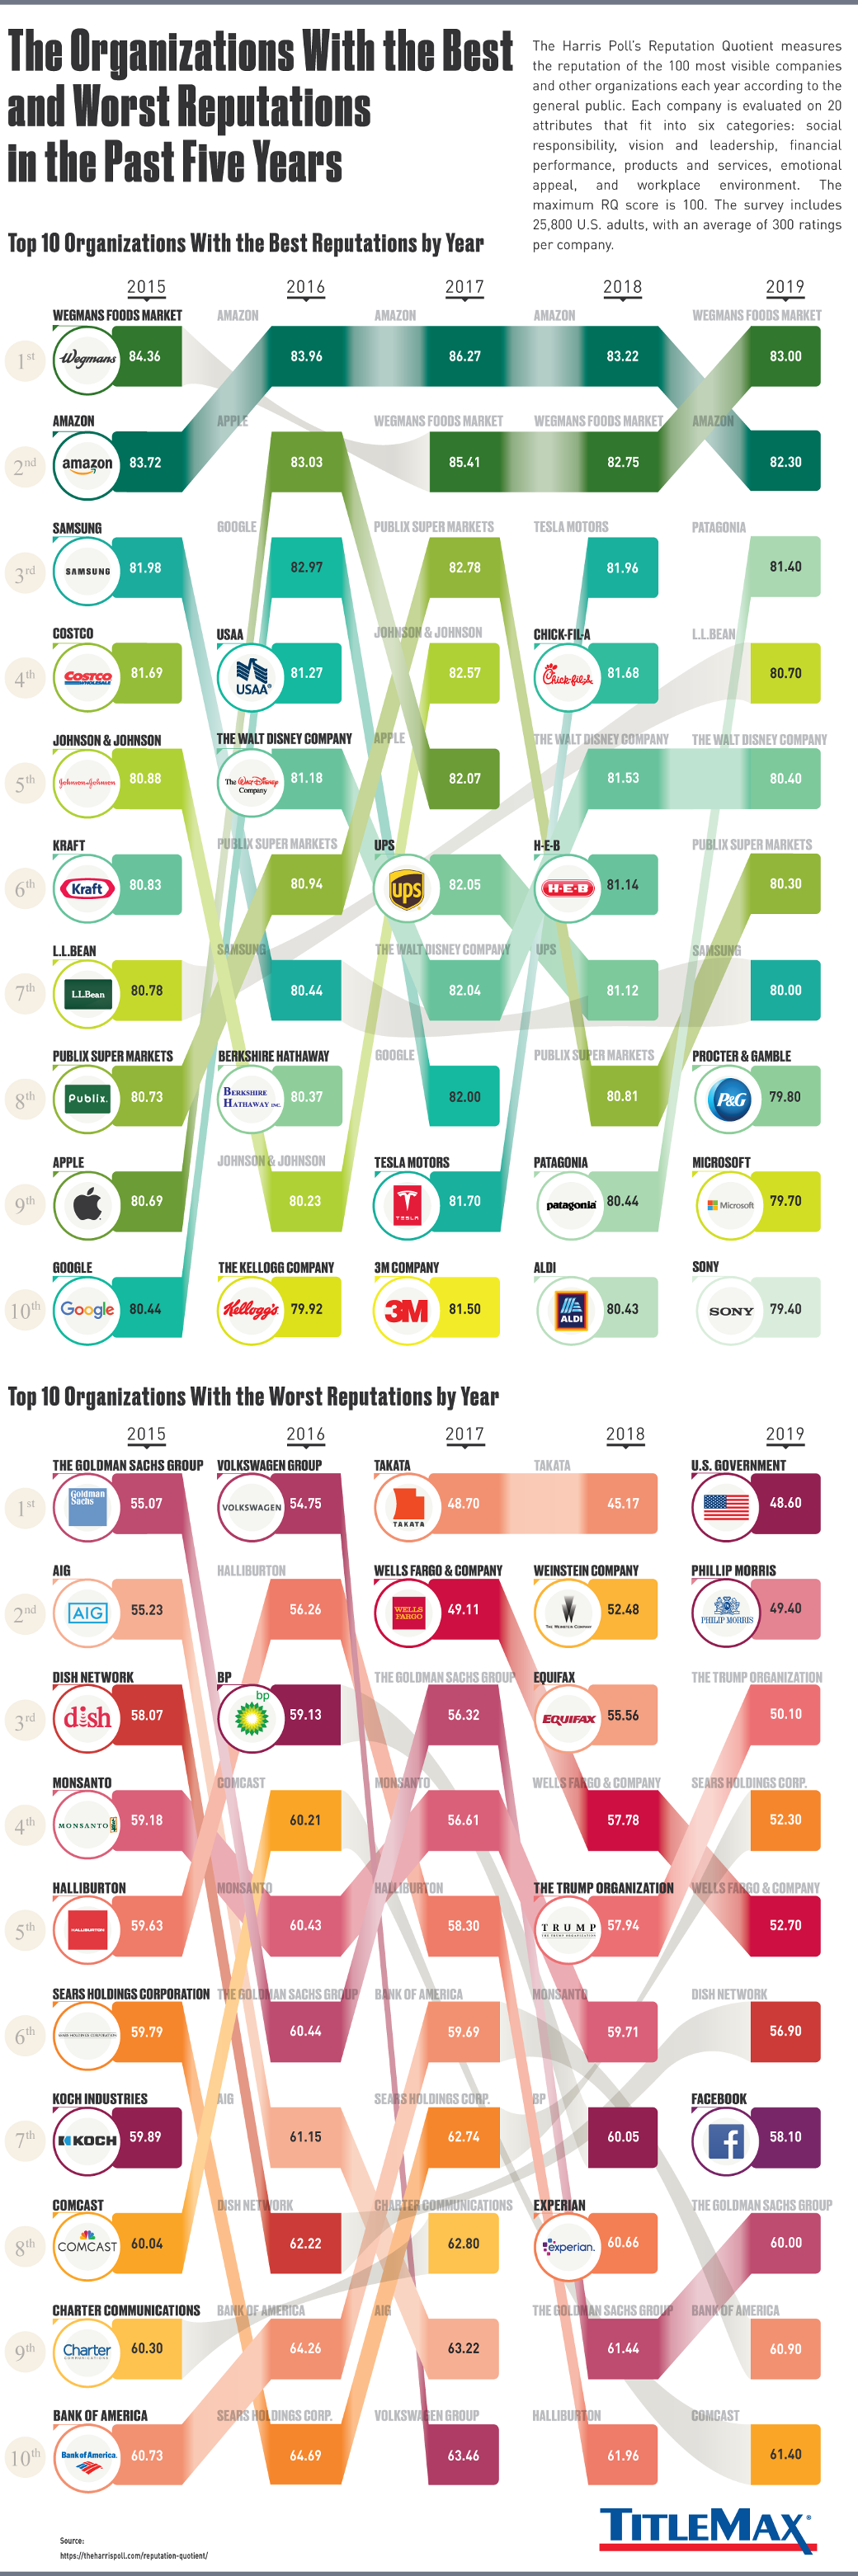 The Organizations With the Best and Worst Reputations in the Past Five Years - TitleMax.com - Infographic